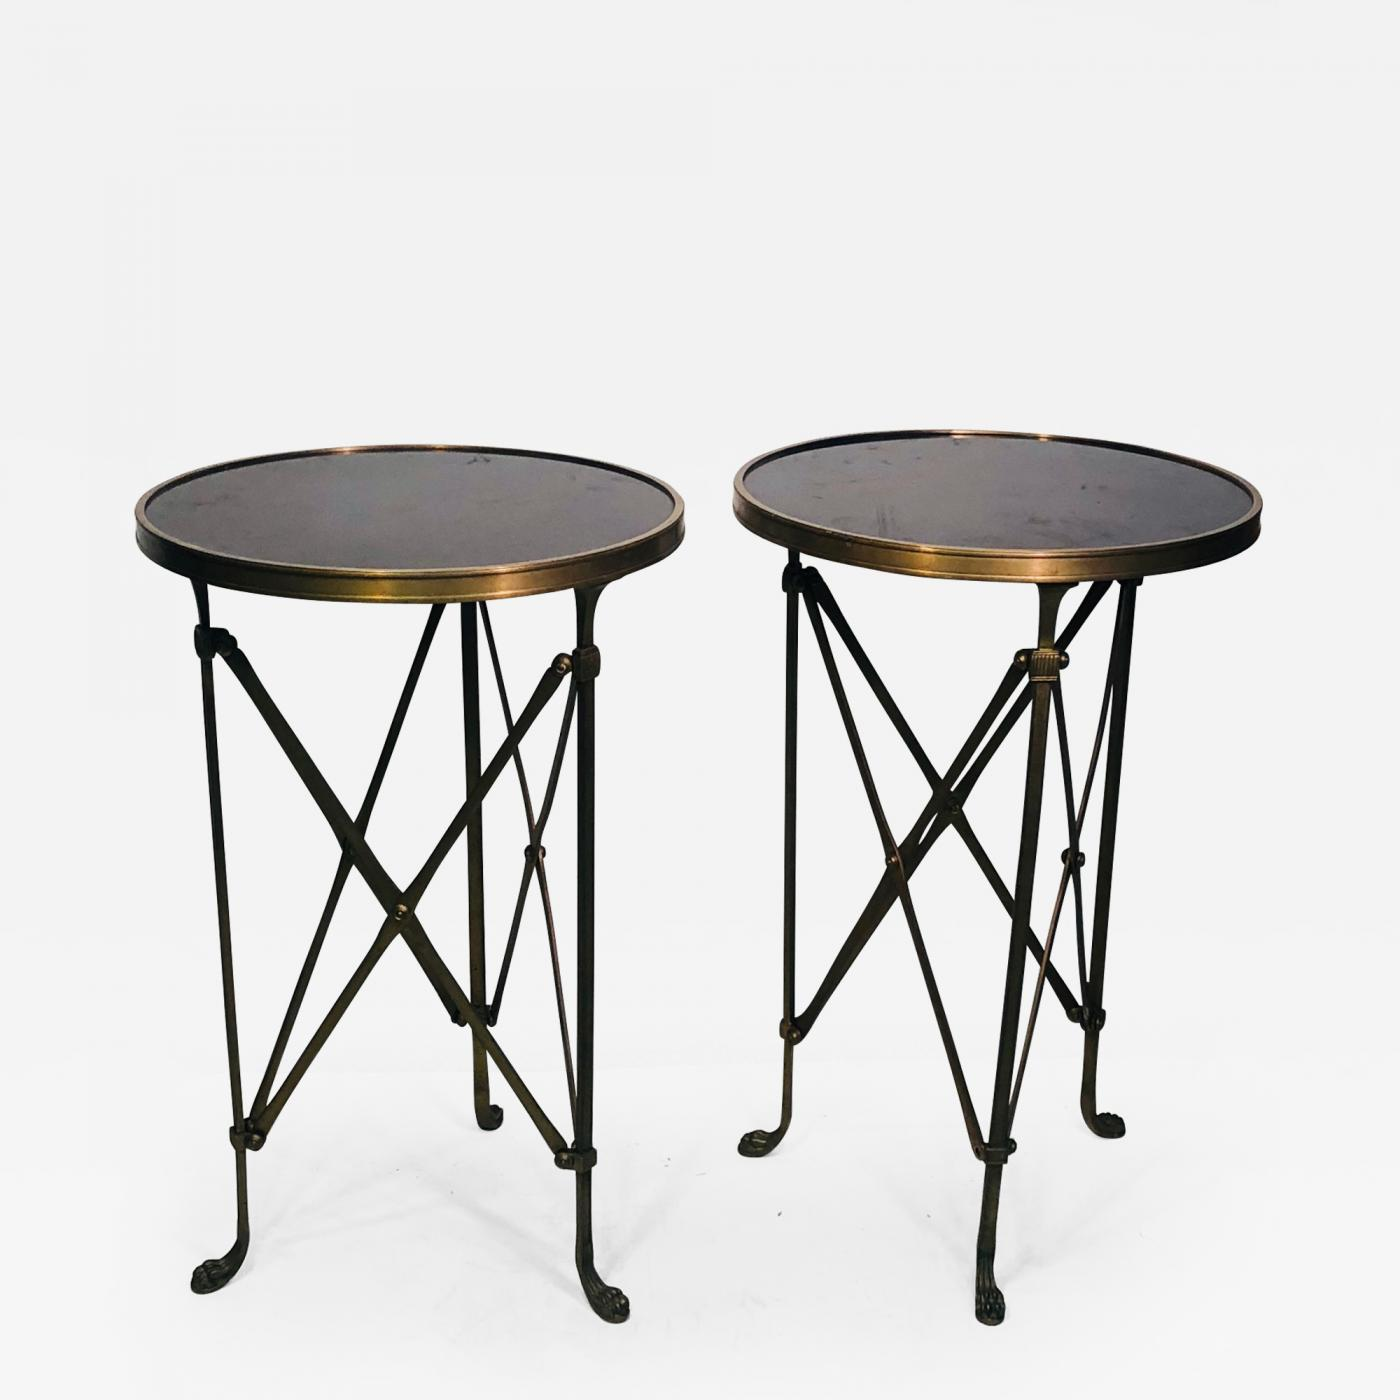 maison jansen pair side tables accent with marble tops the manner kidney shaped table listings furniture serving garden box diy hairpin legs ballard designs office outdoor wicker